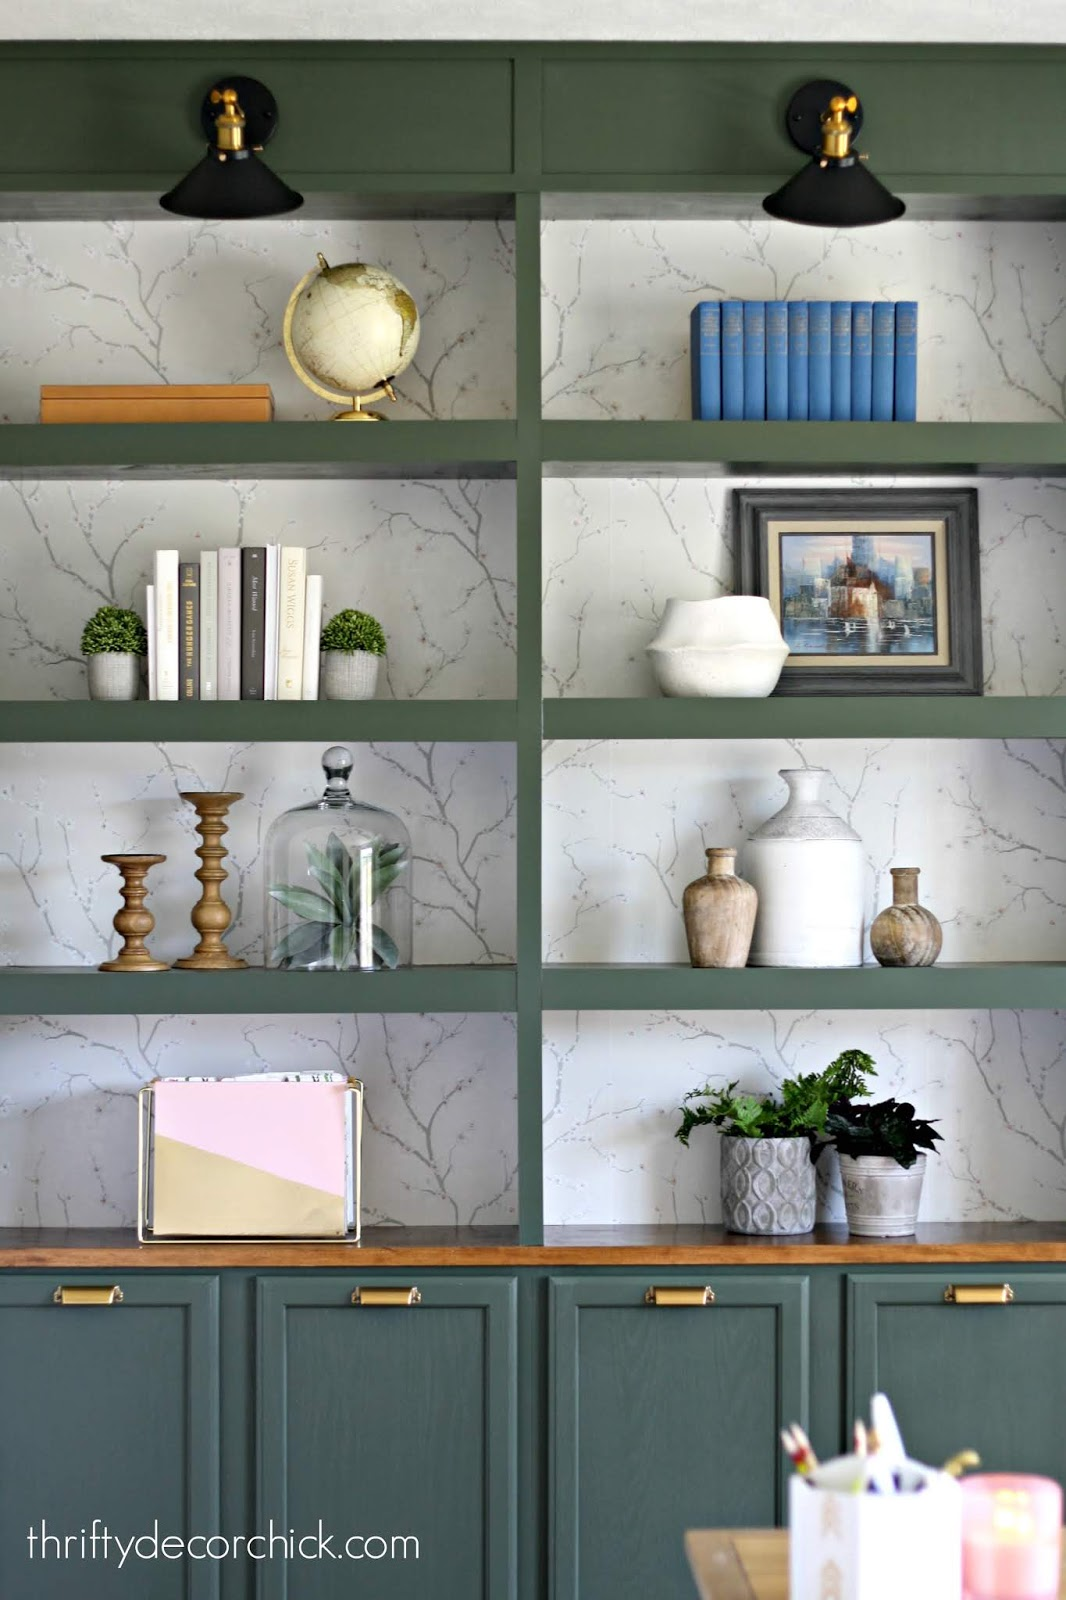 Tips for decorating built ins